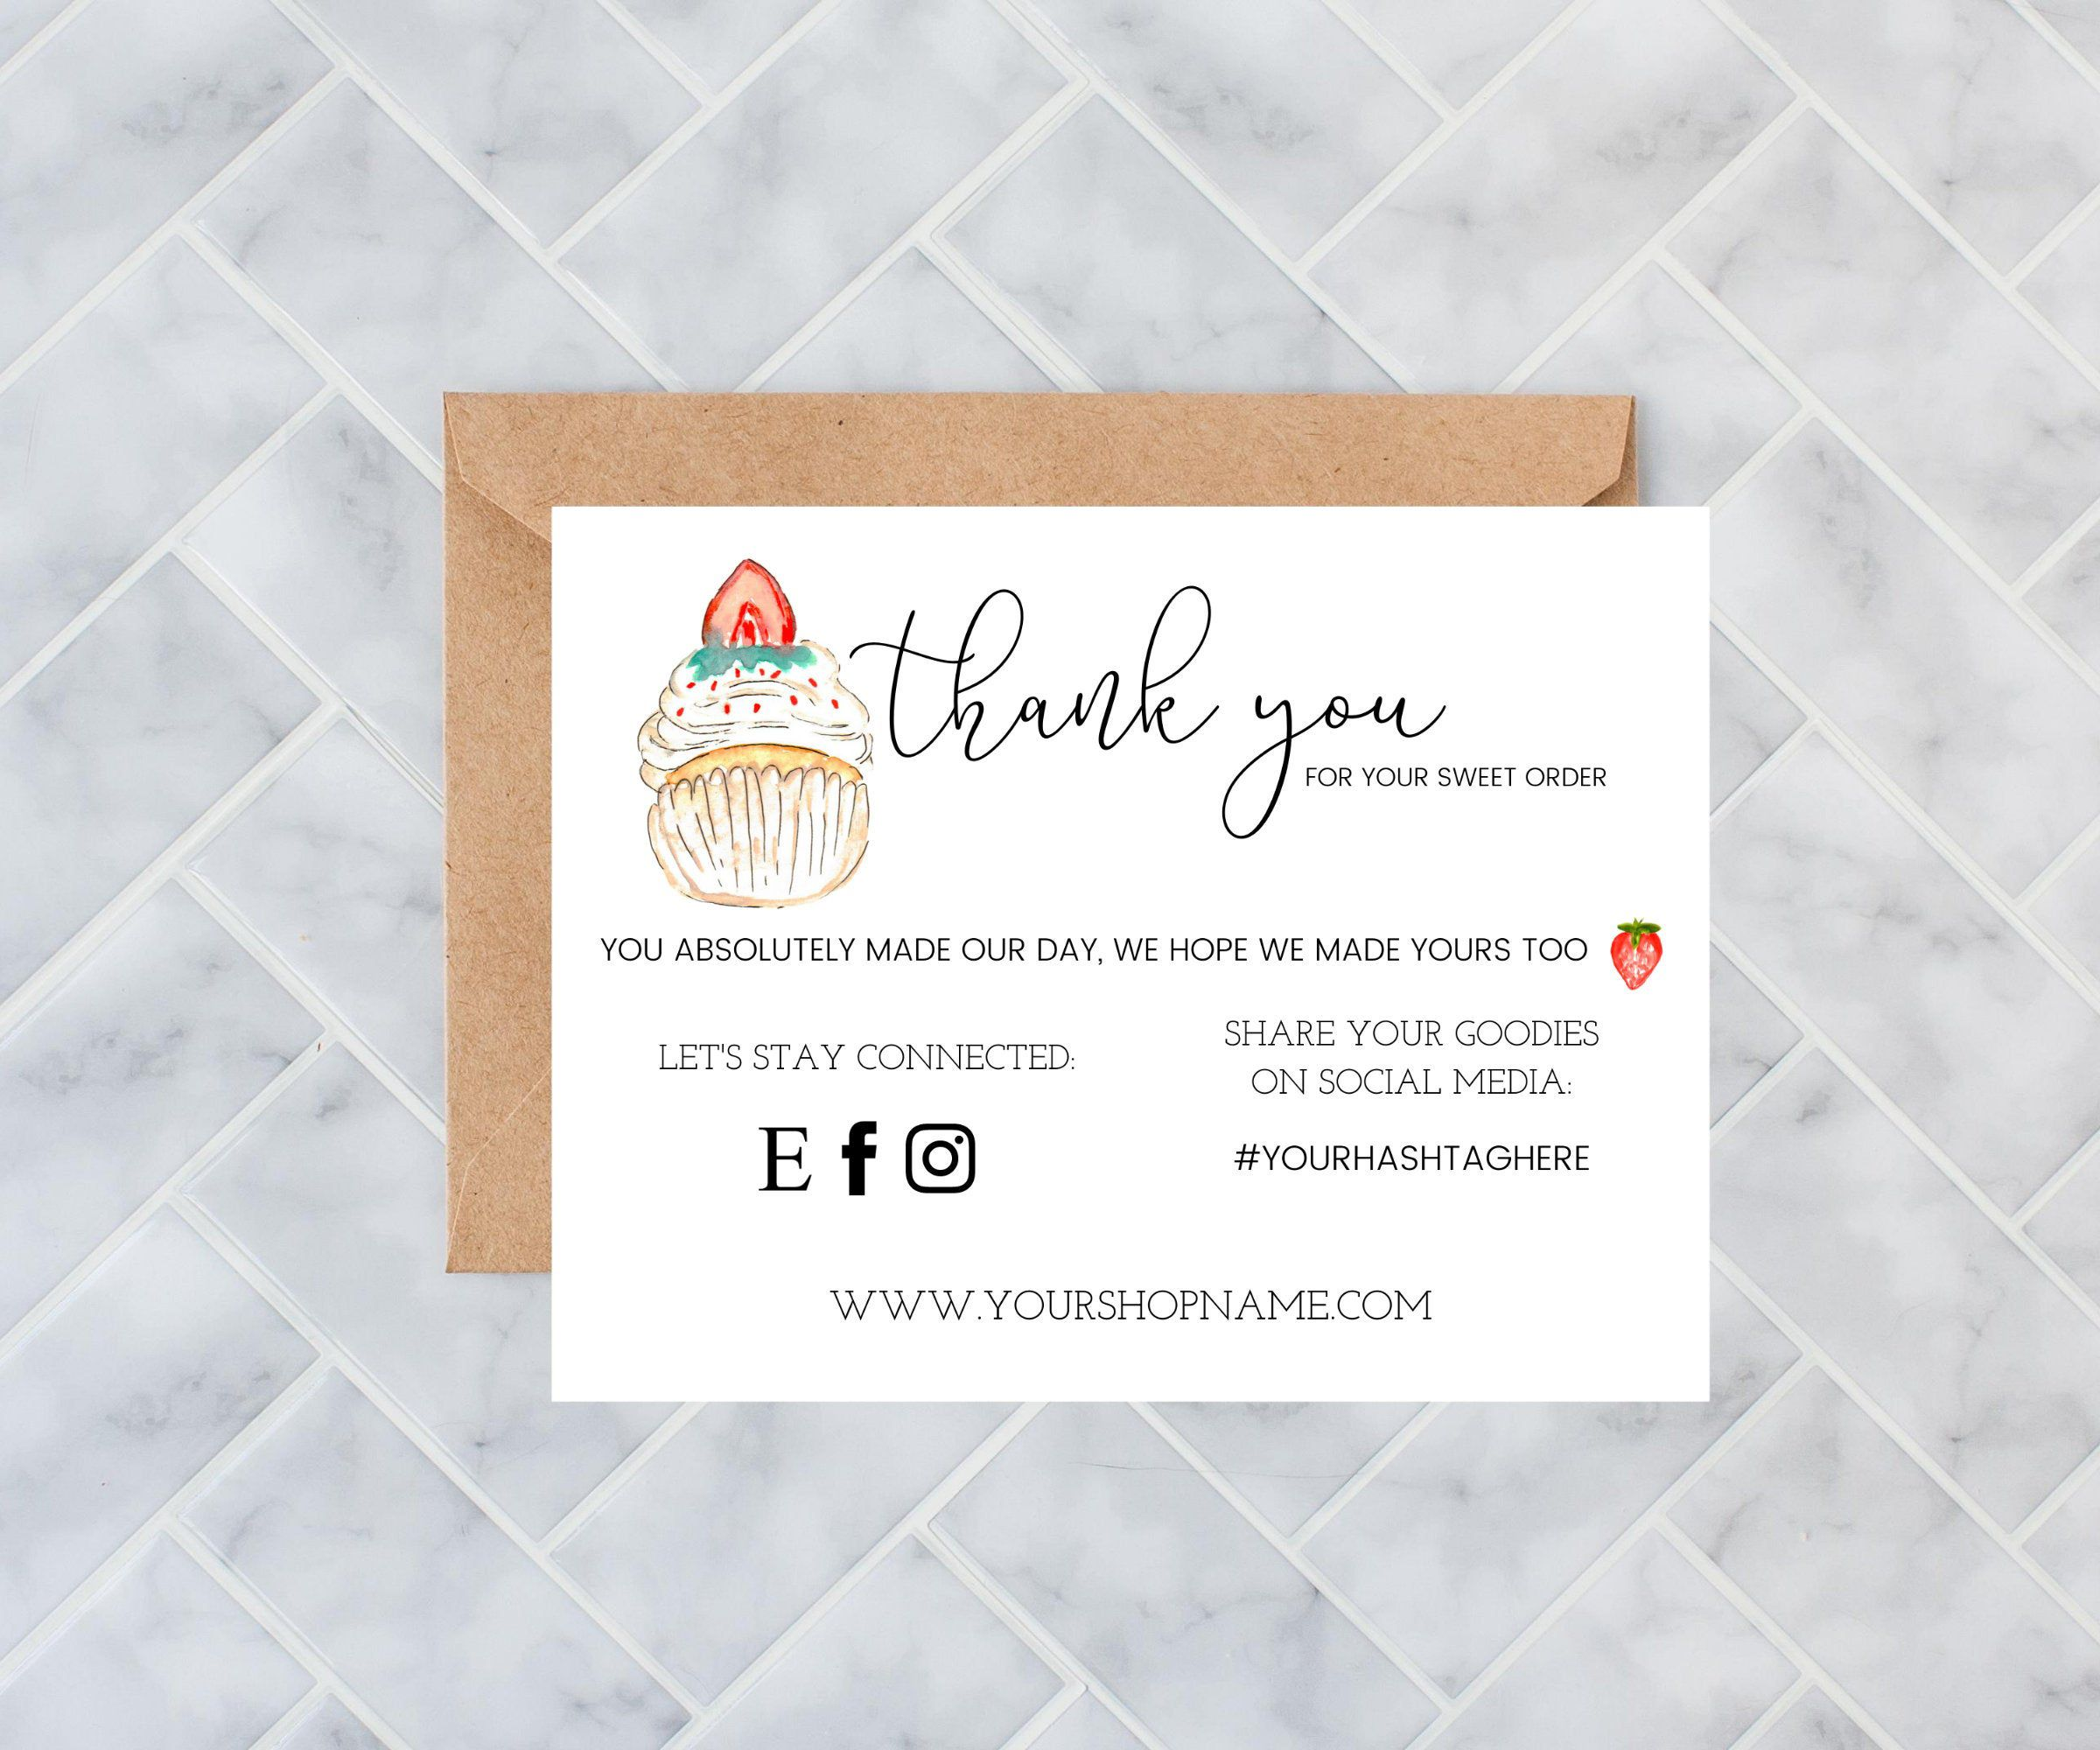 Bakery Business Cards Editable Template Baker Business Cards Etsy Bakery Business Cards Business Thank You Cards Bakery Packaging